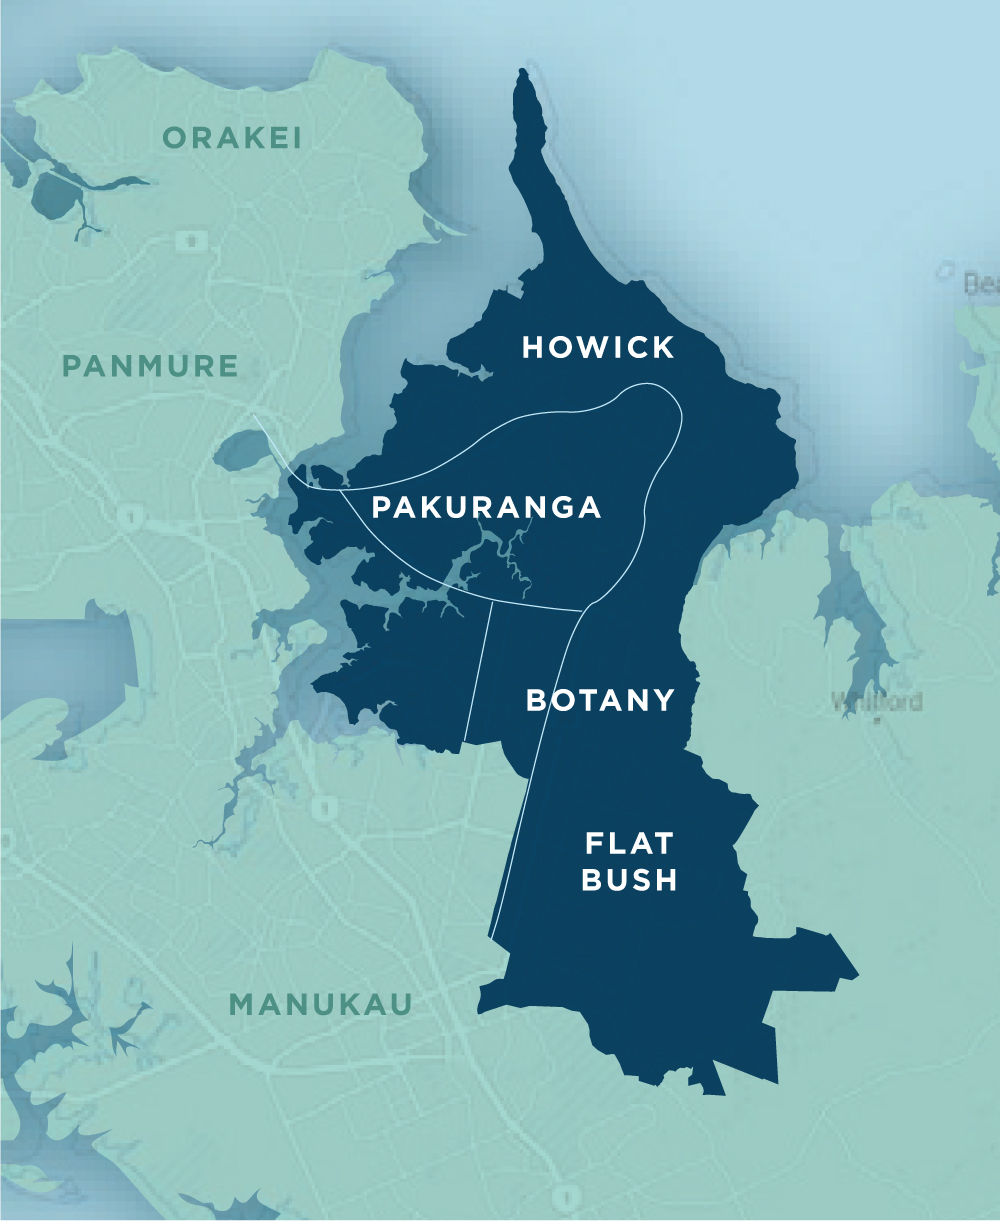 Howick Council Ward - To vote in the by-election you will need to live in the dark blue area of the map and complete a postal vote.Voting is open from 22 august - 13 September.Simply tick